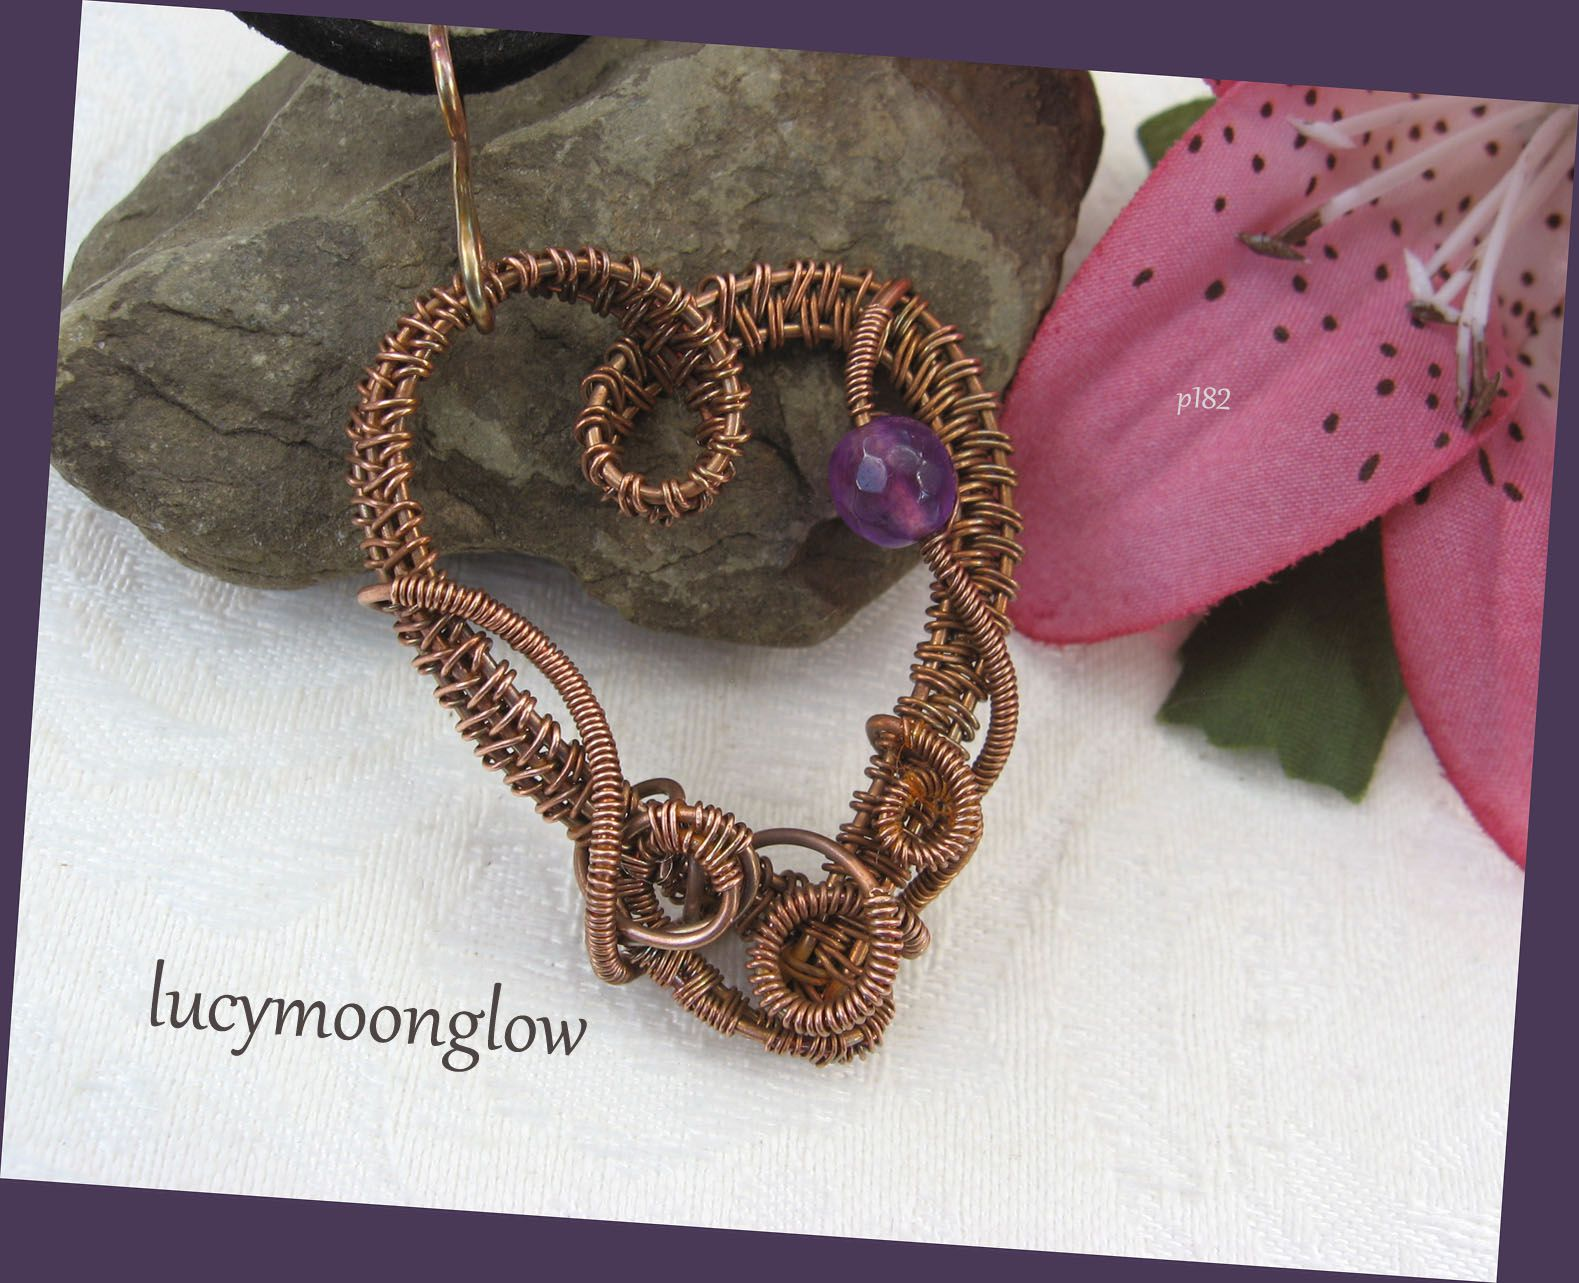 copper wire pendant gift jewelry heart handmade necklace gemstone woven wirewoven wireweave lucymoonglow handcrafted purple jade